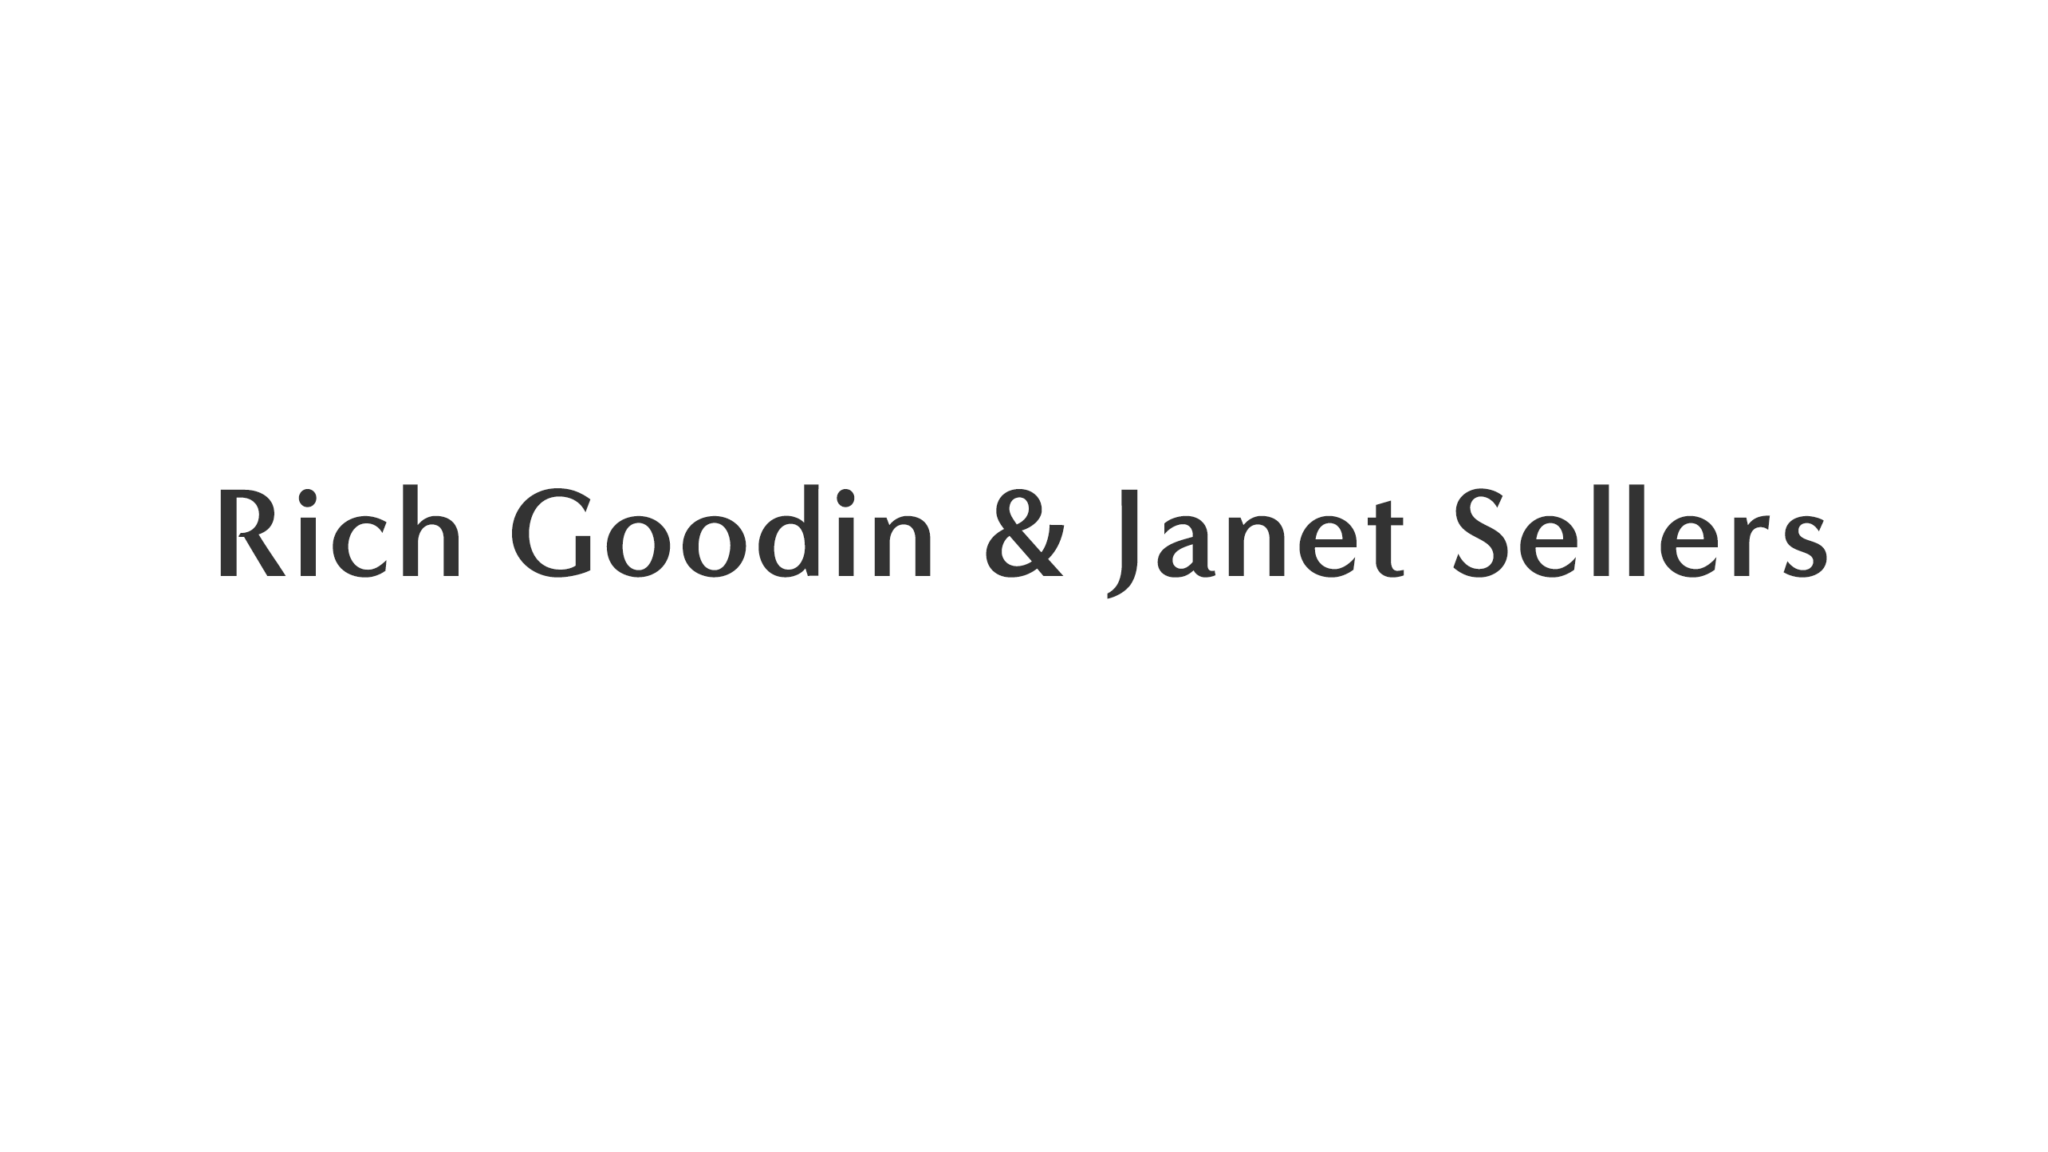 Rich Goodin & Janet Sellers